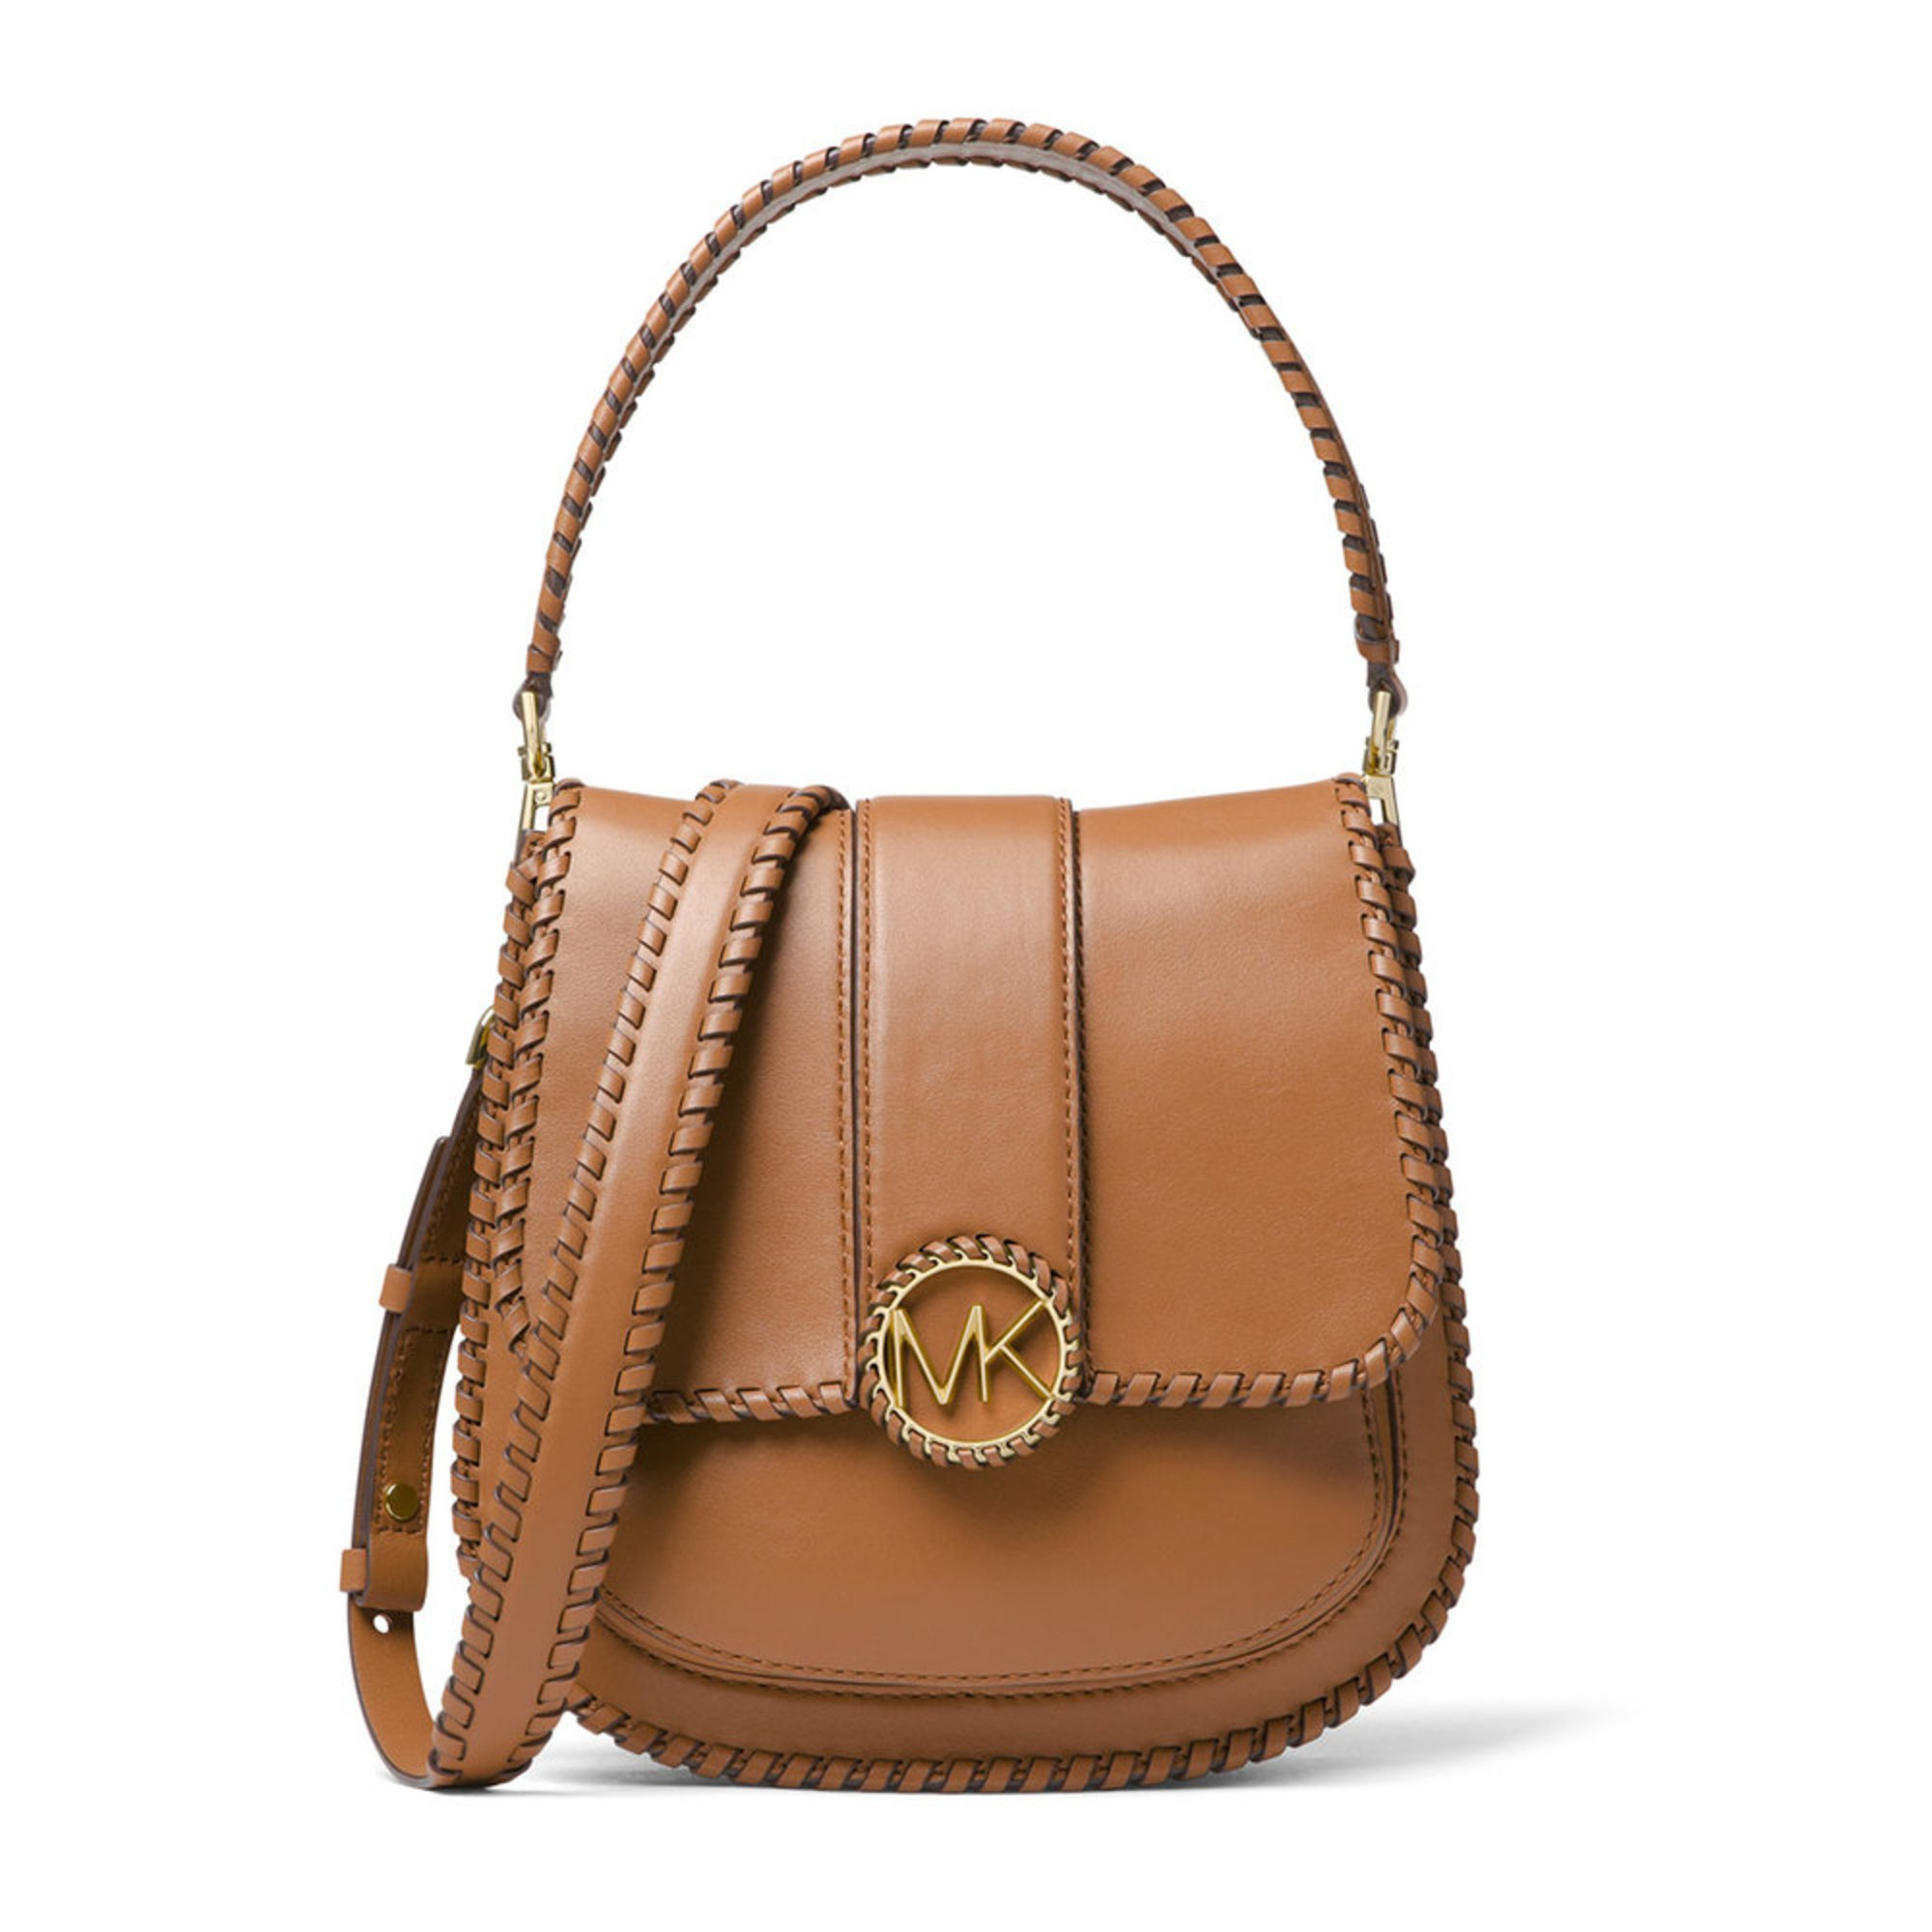 fbc1d15dd5f9 Michael Kors. Michael Kors Lillie Medium Flap Messenger